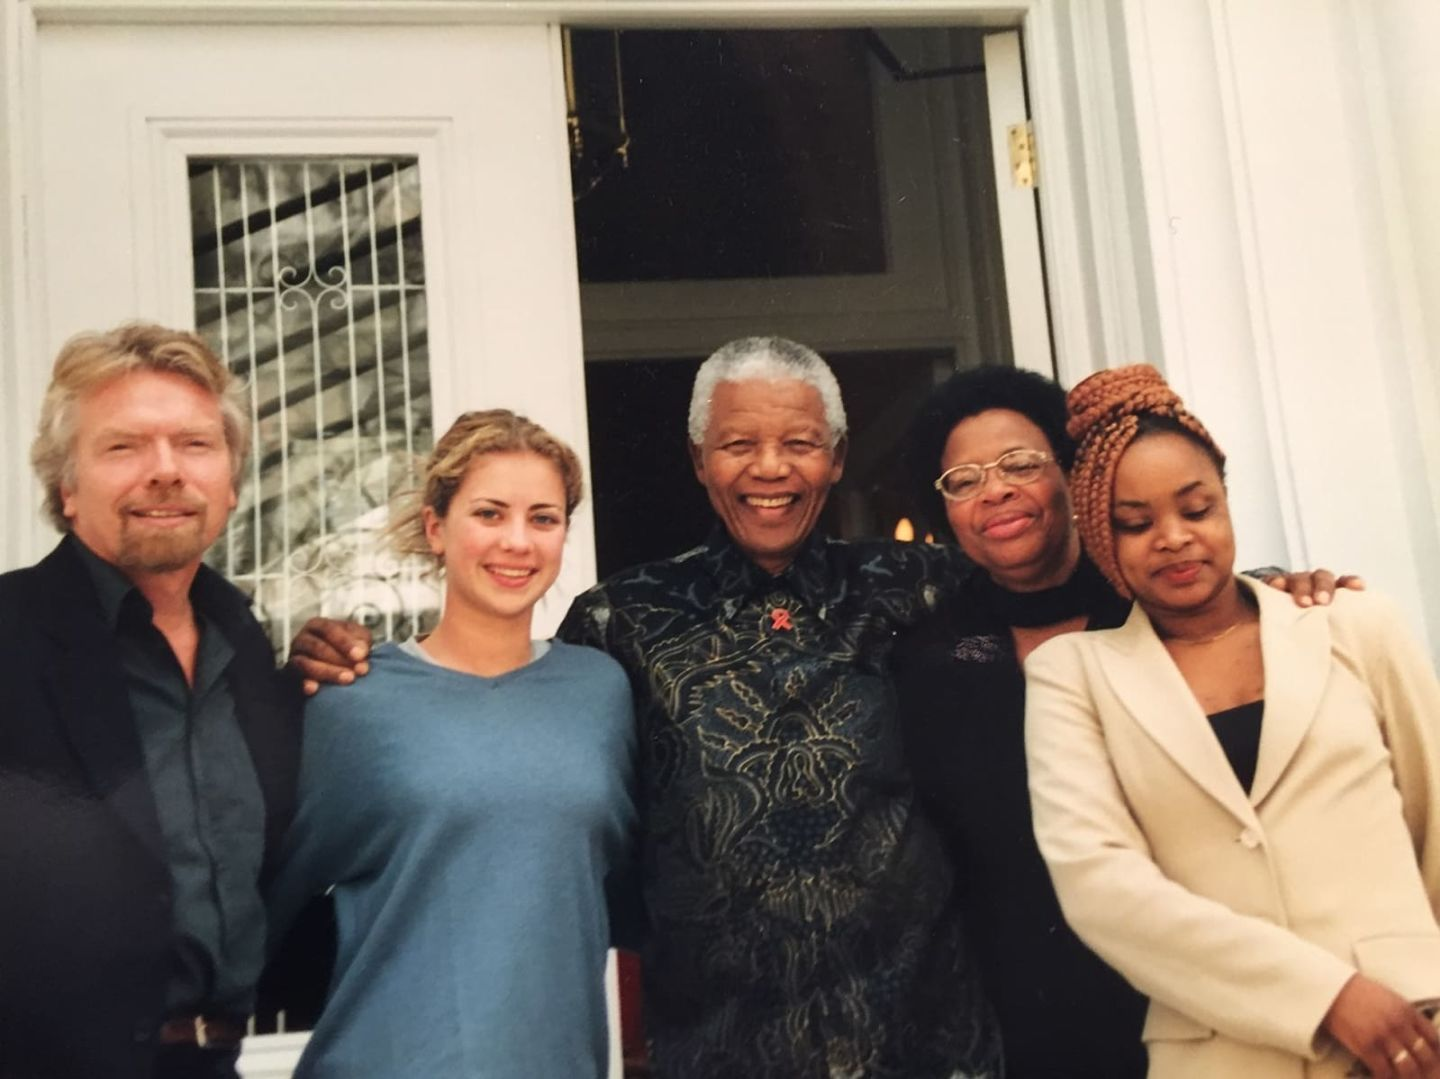 Richard, Holly and Nelson Mandela and family standing outside together